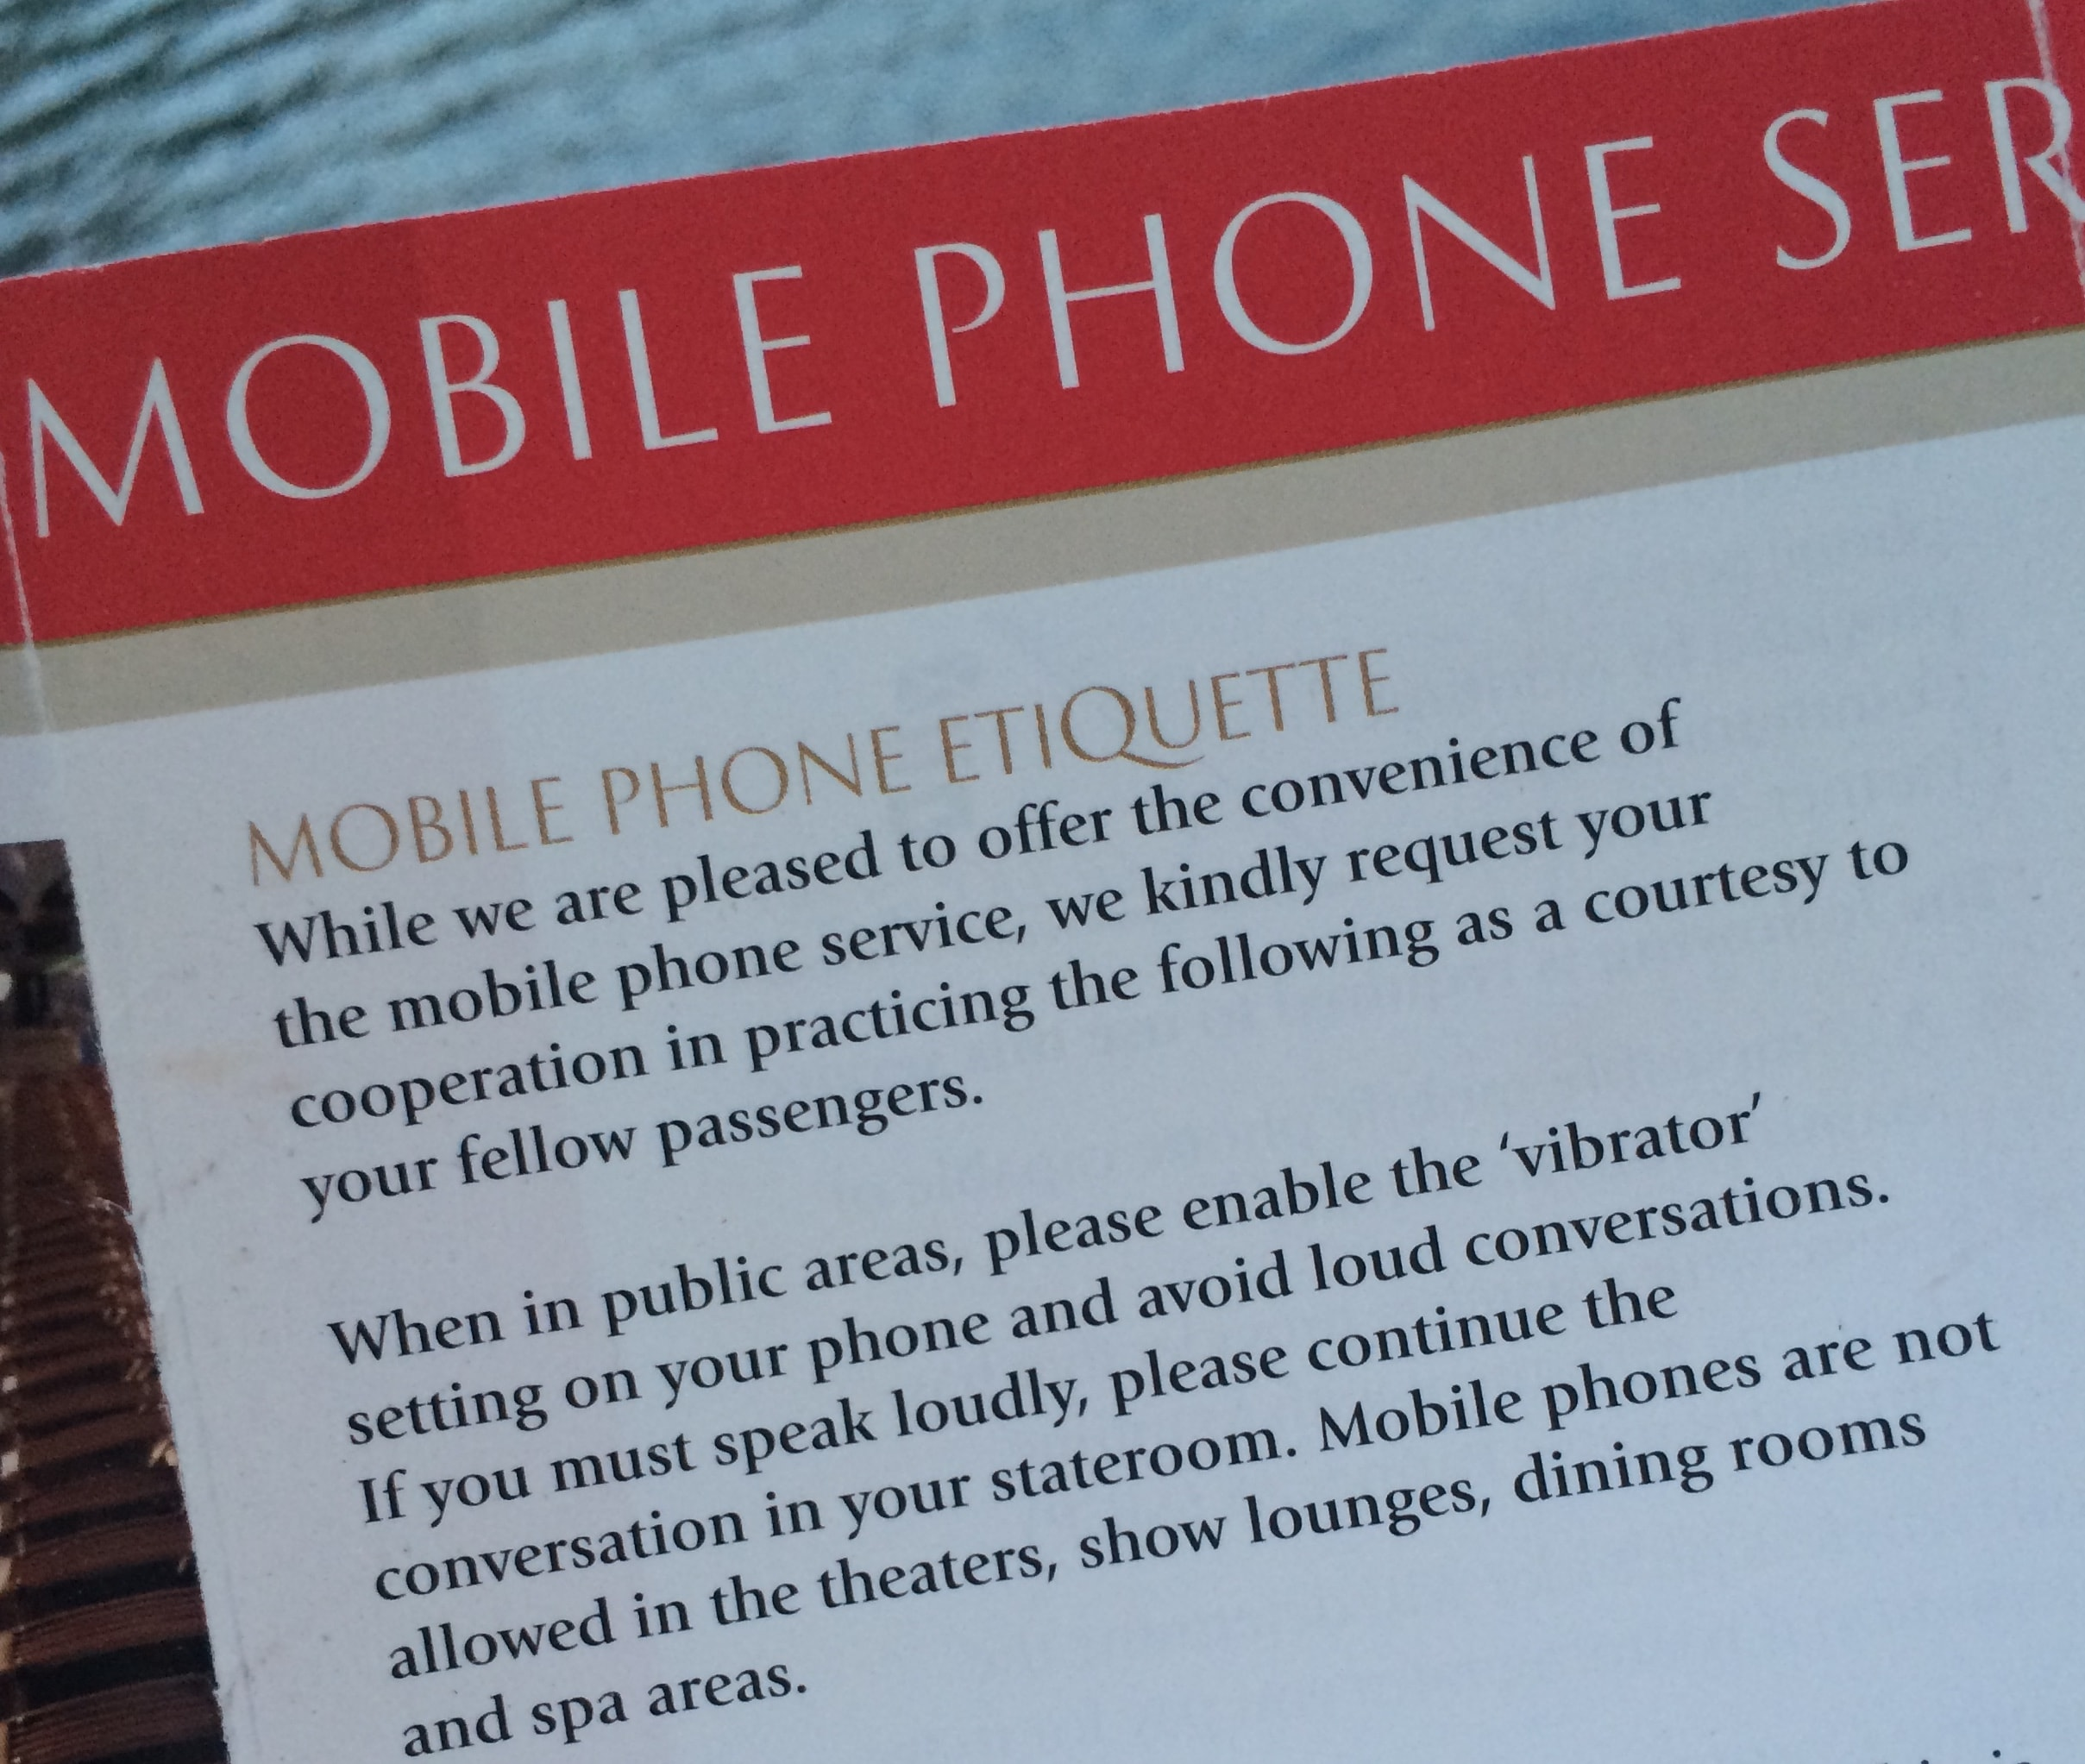 mobile phone cruise ship cunard mobile data cell phone wifi free wifi onboard internet package